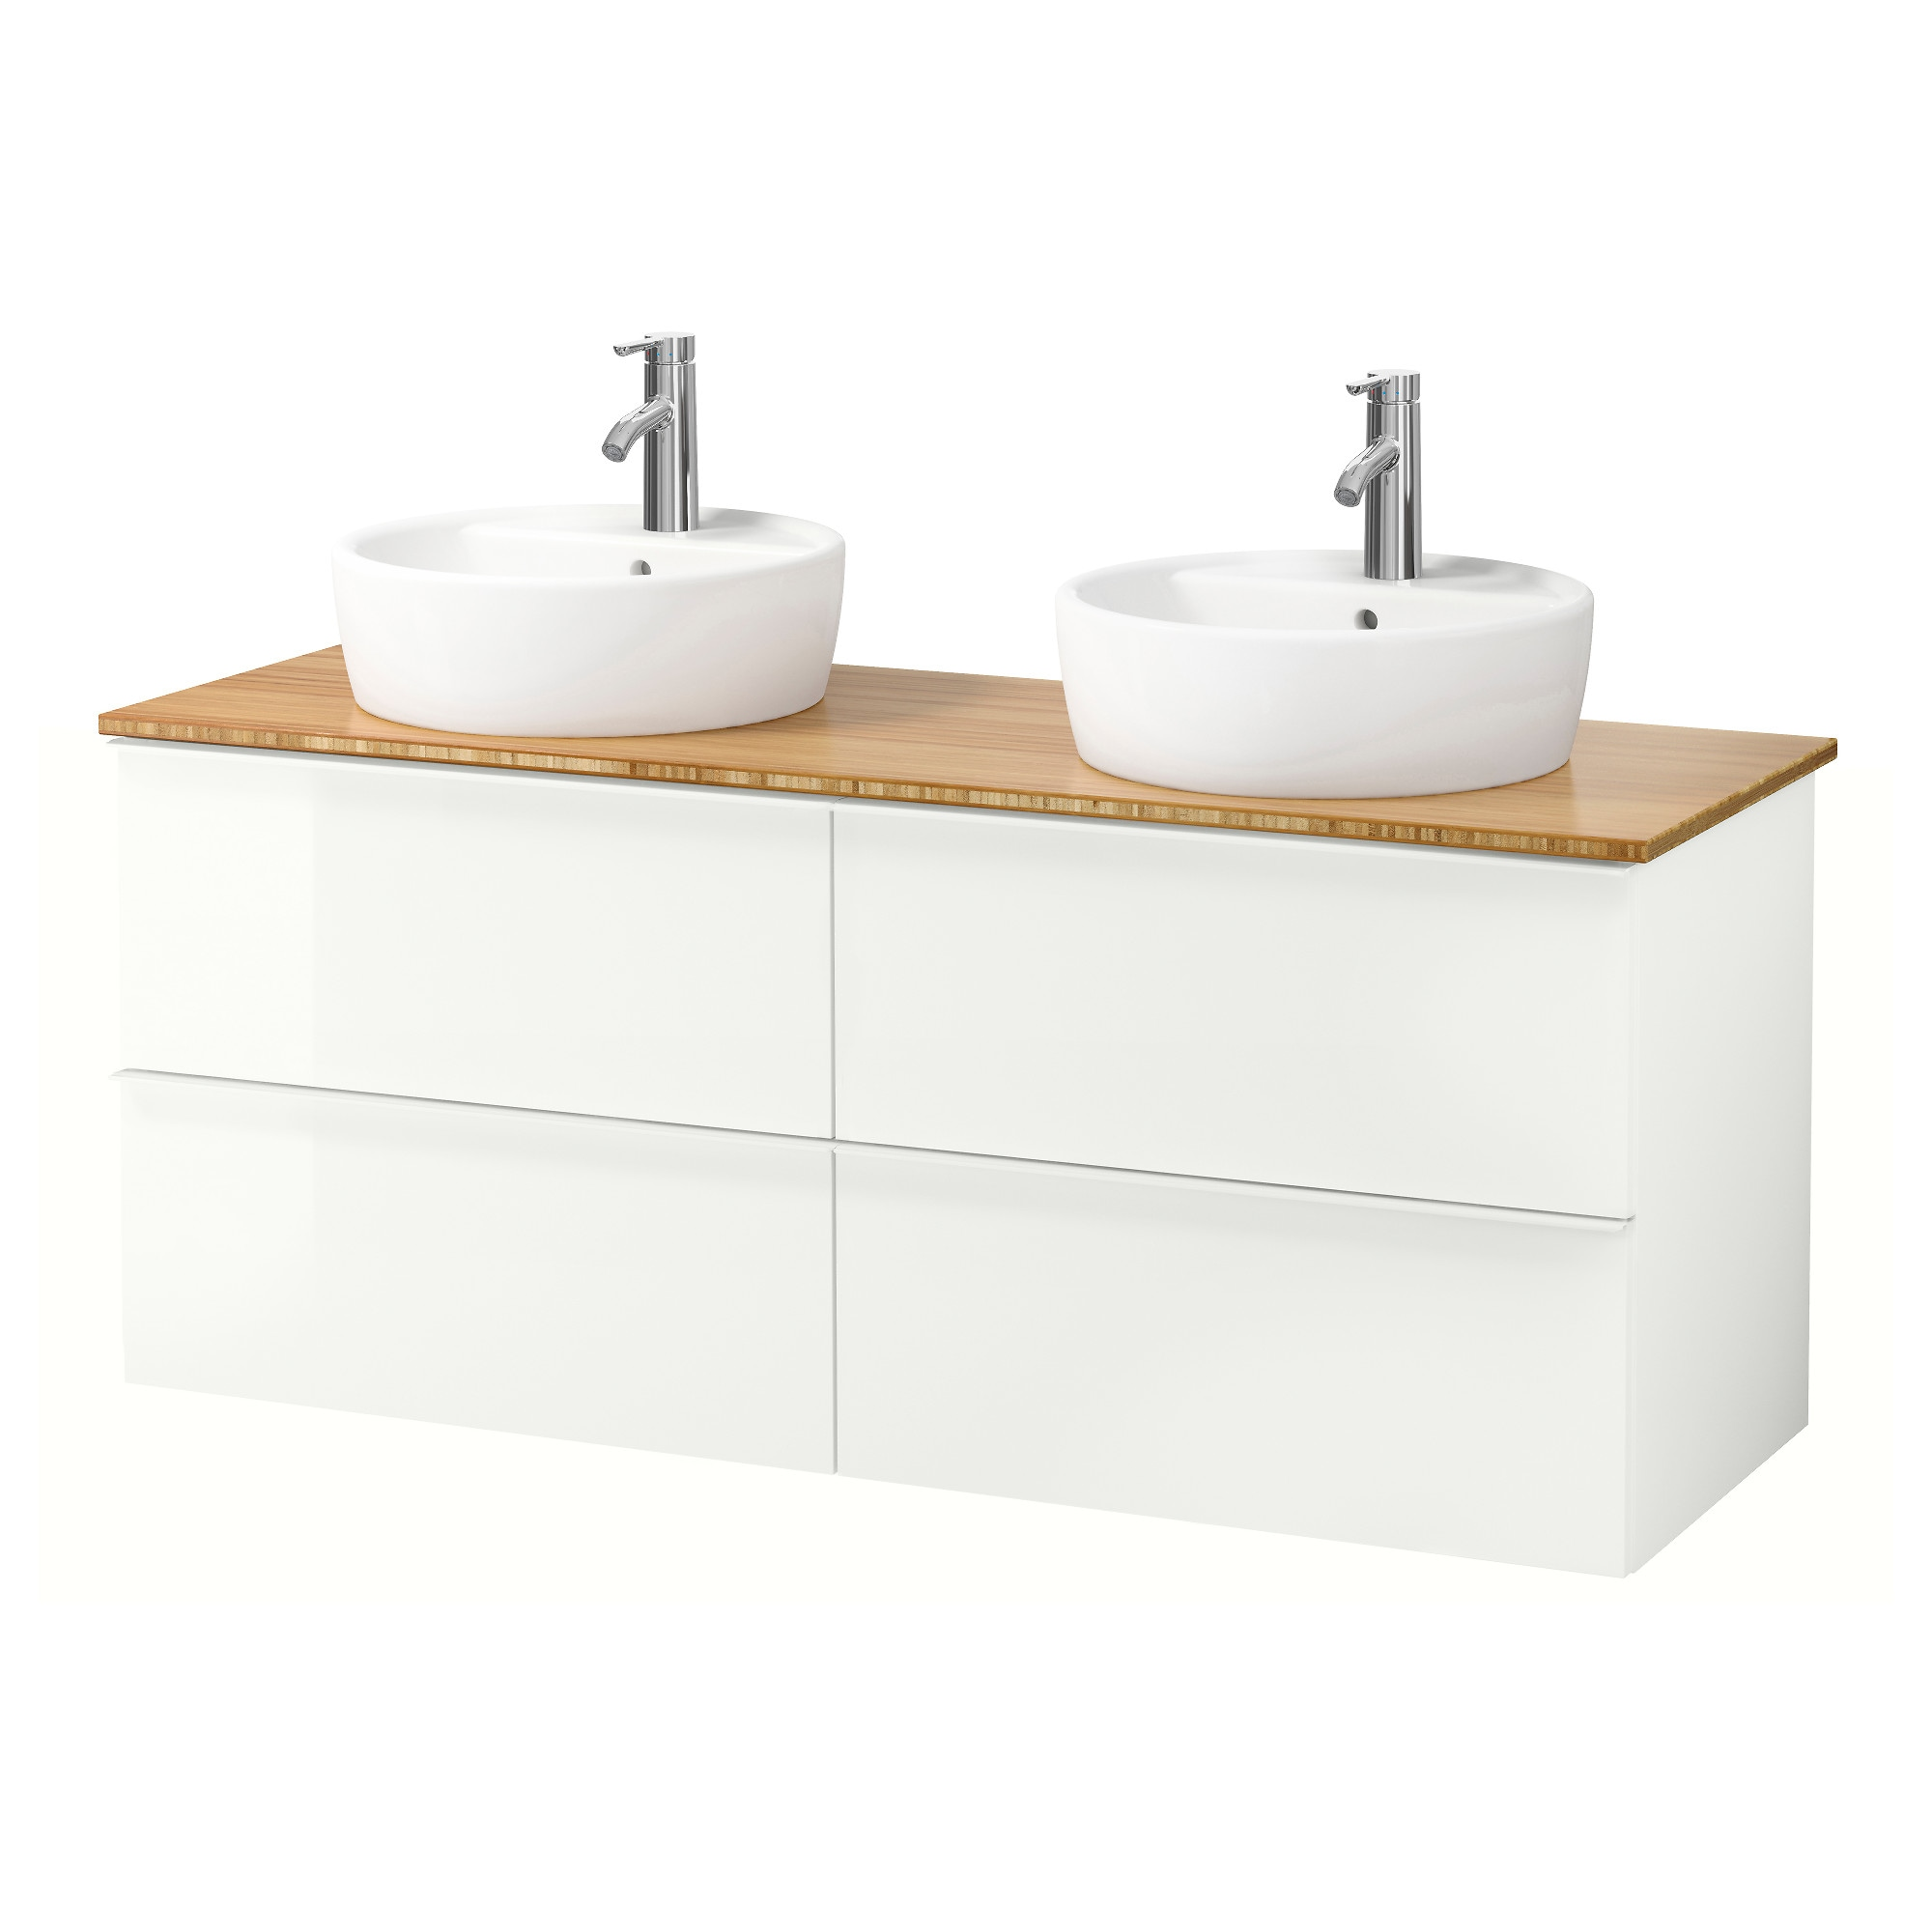 Awesome meuble lavabo salle de bain dimension contemporary for Meubles lavabo ikea